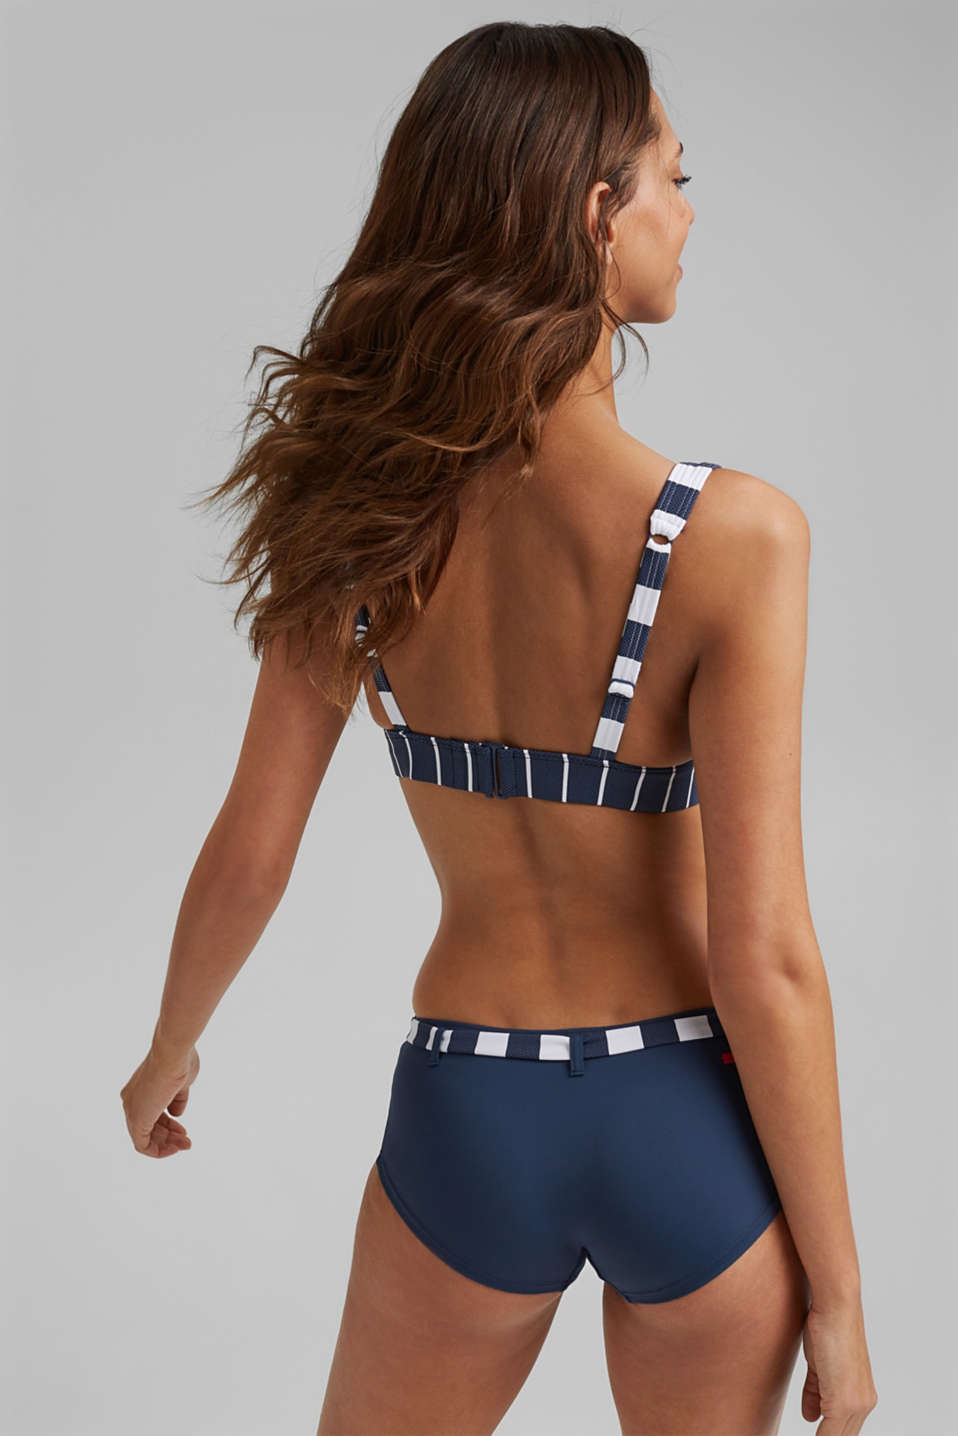 Padded, non-wired top with stripes, DARK BLUE, detail image number 1